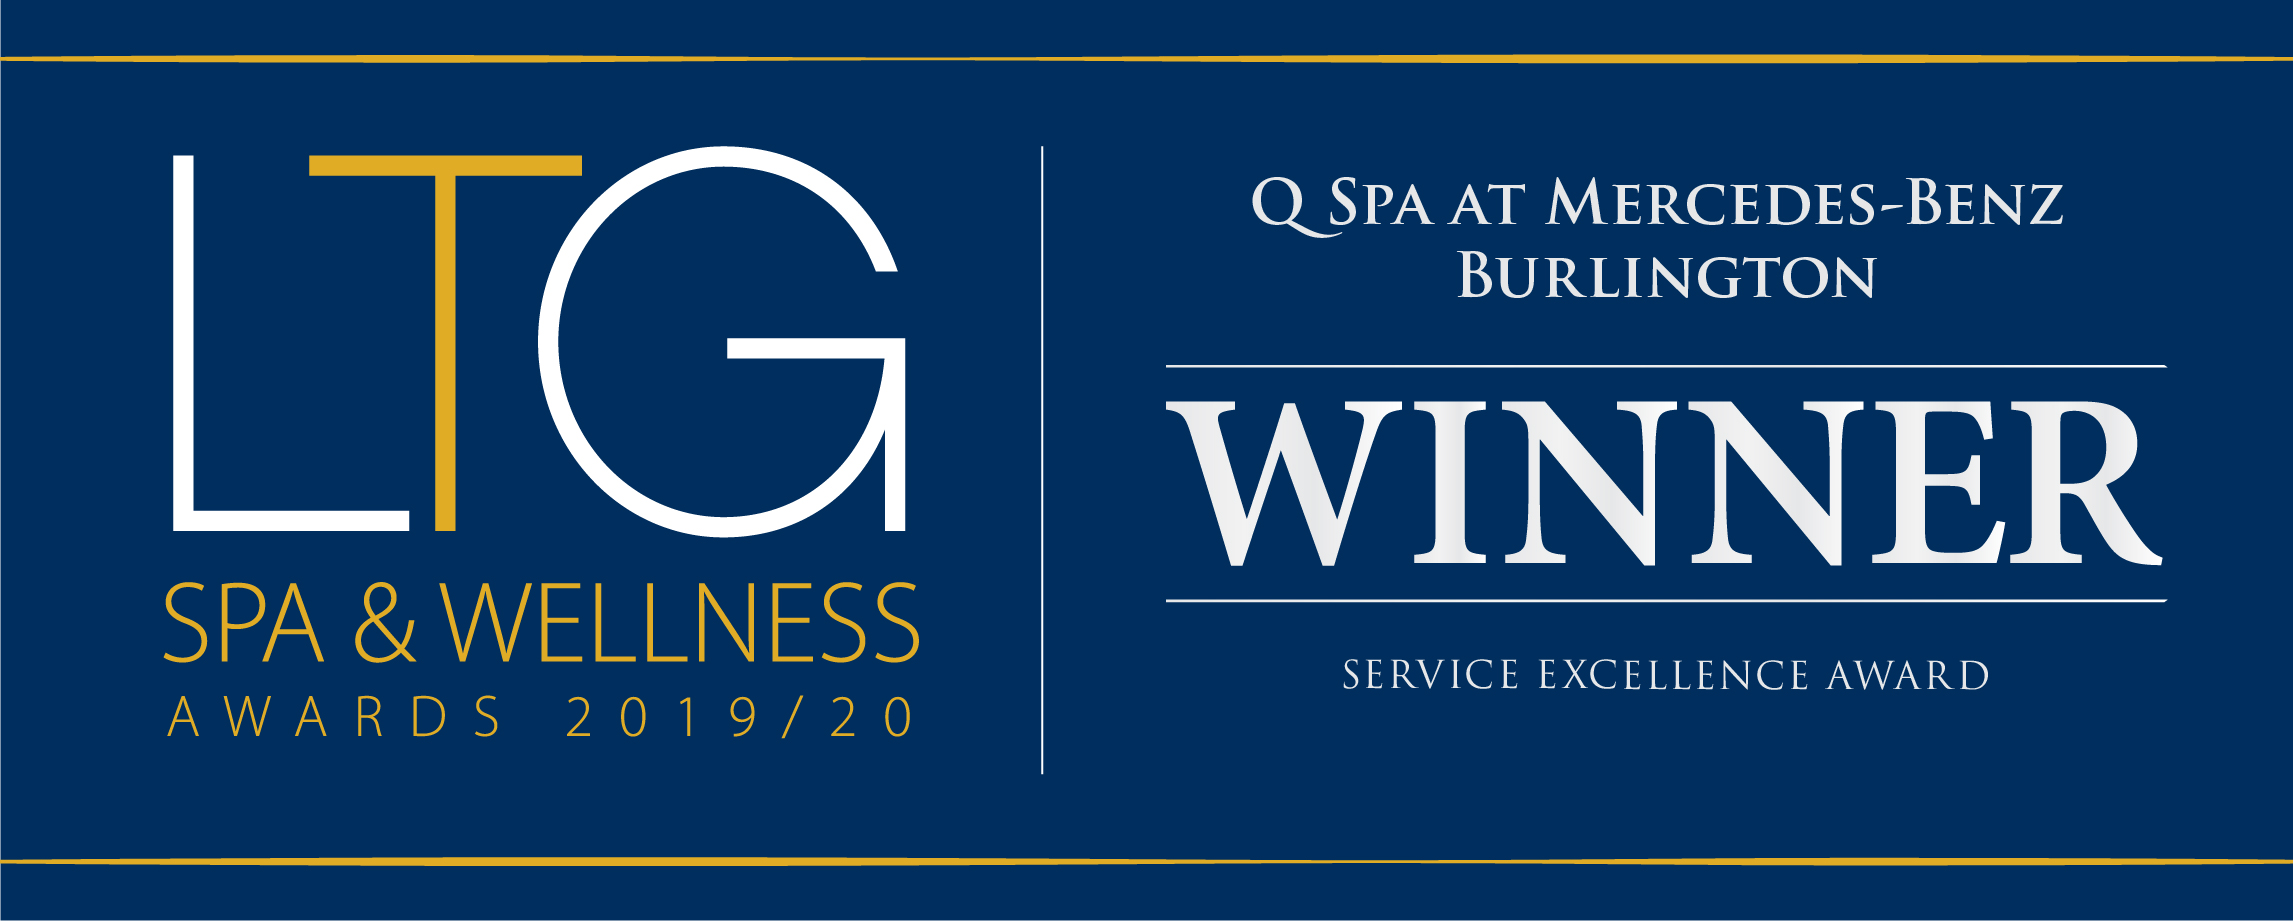 Q spa Service Excellence Award Winner